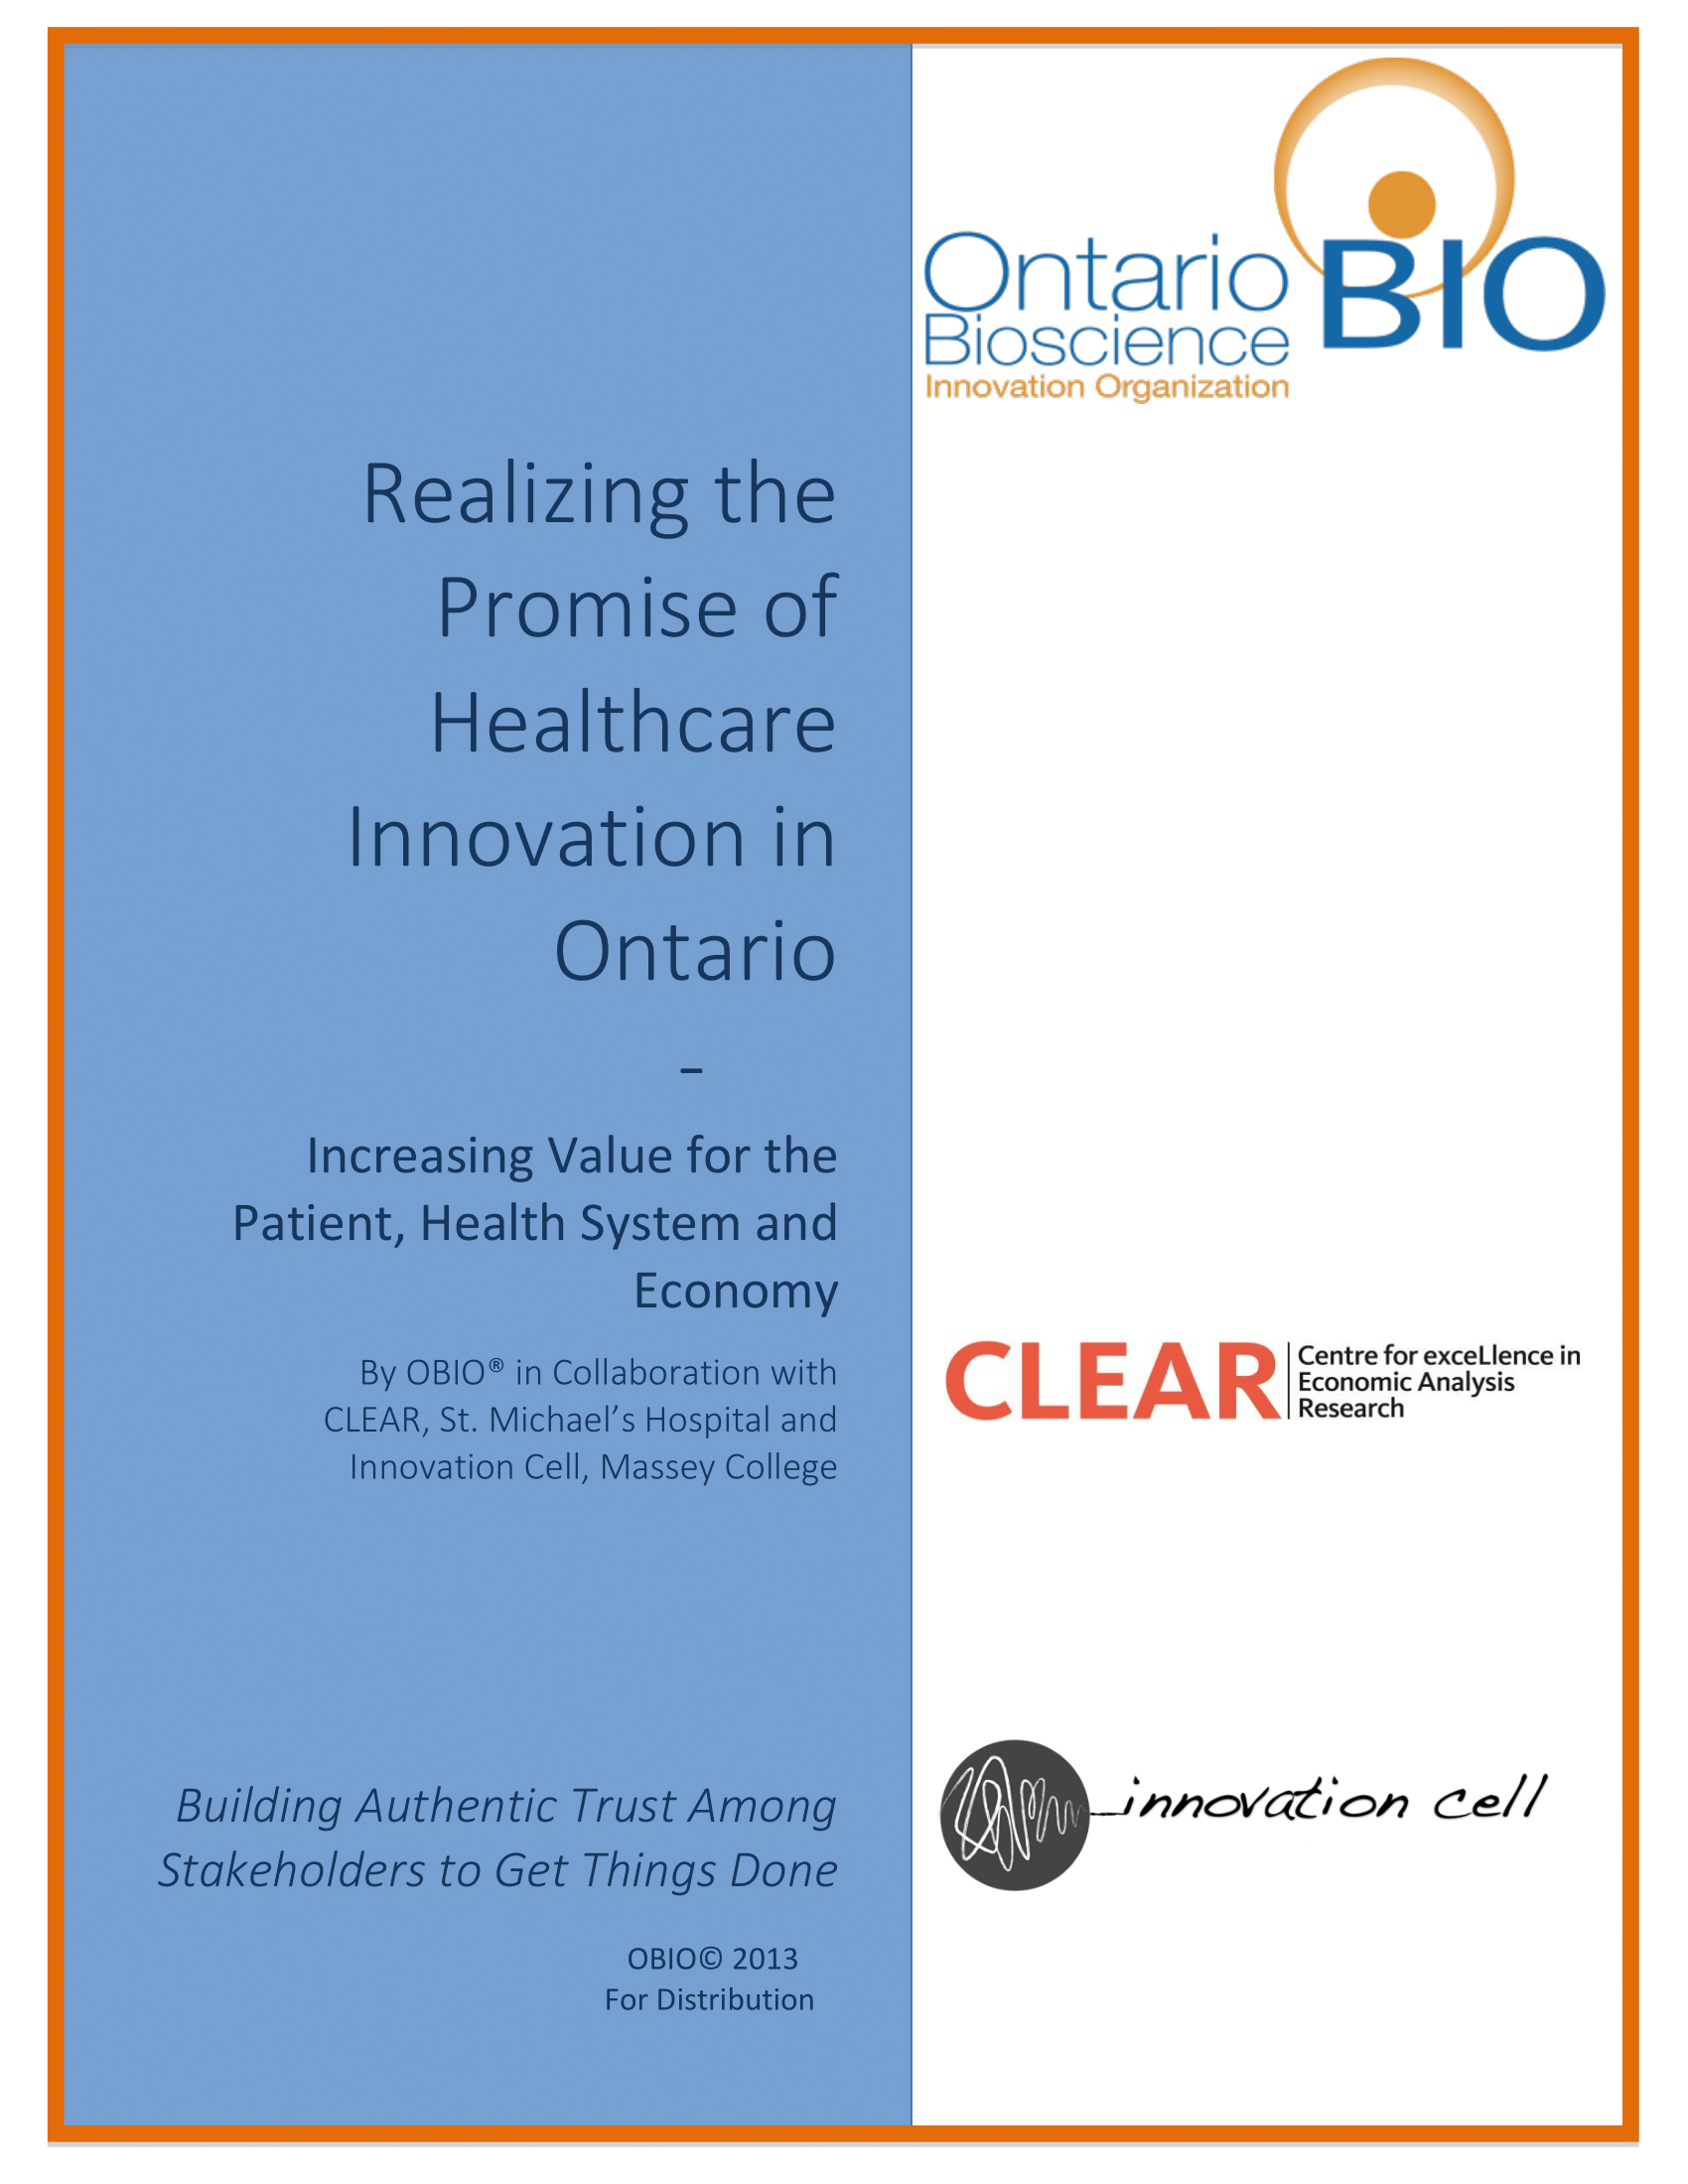 Innovation-Adoption-Report-for-Distribution-1-1.png